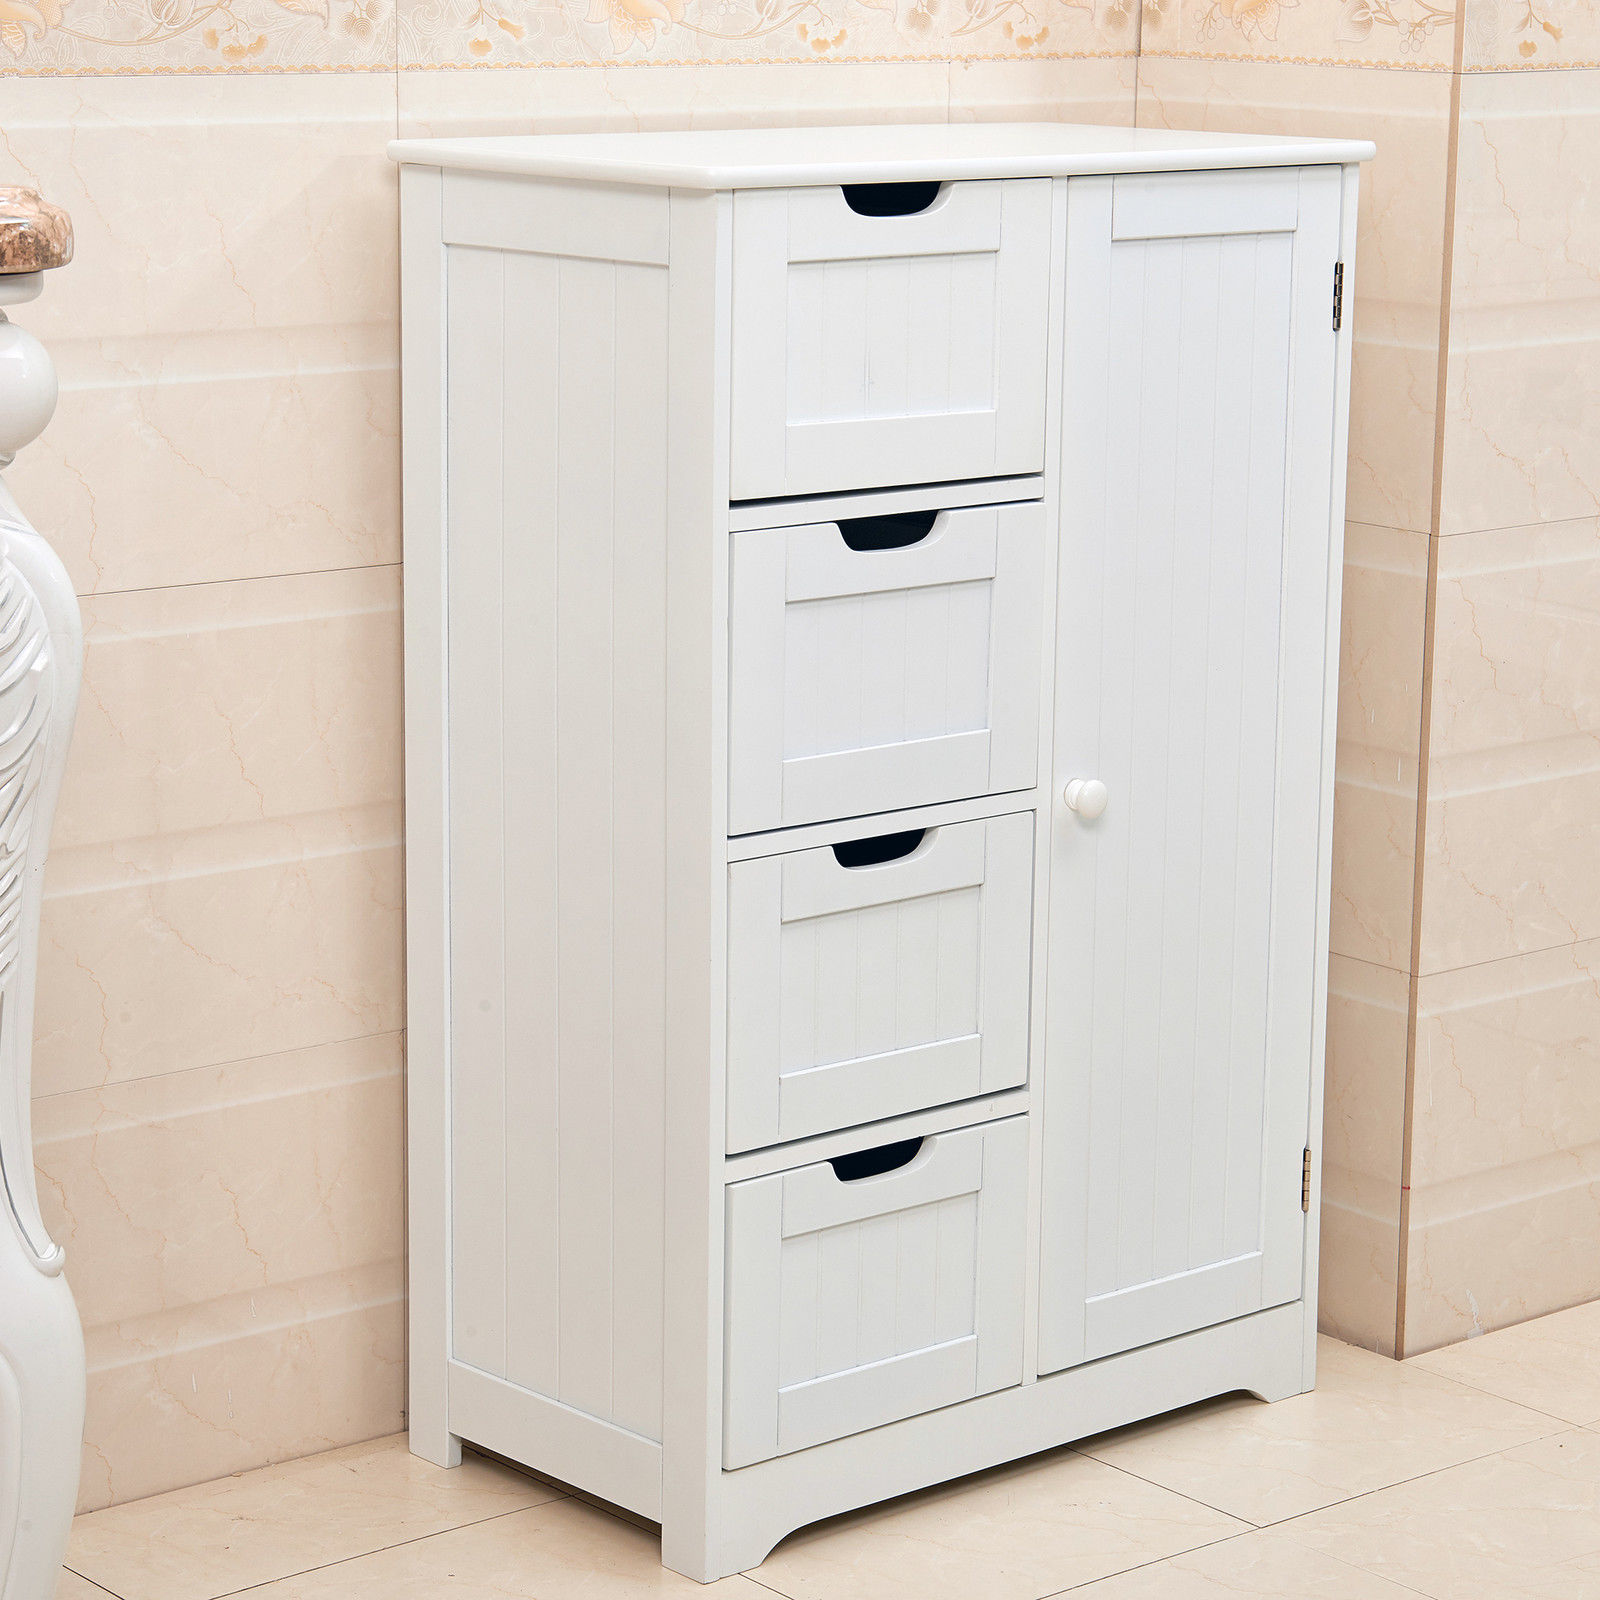 4 drawer bathroom cabinet new white wooden cabinet with 4 drawers amp cupboard storage 15307